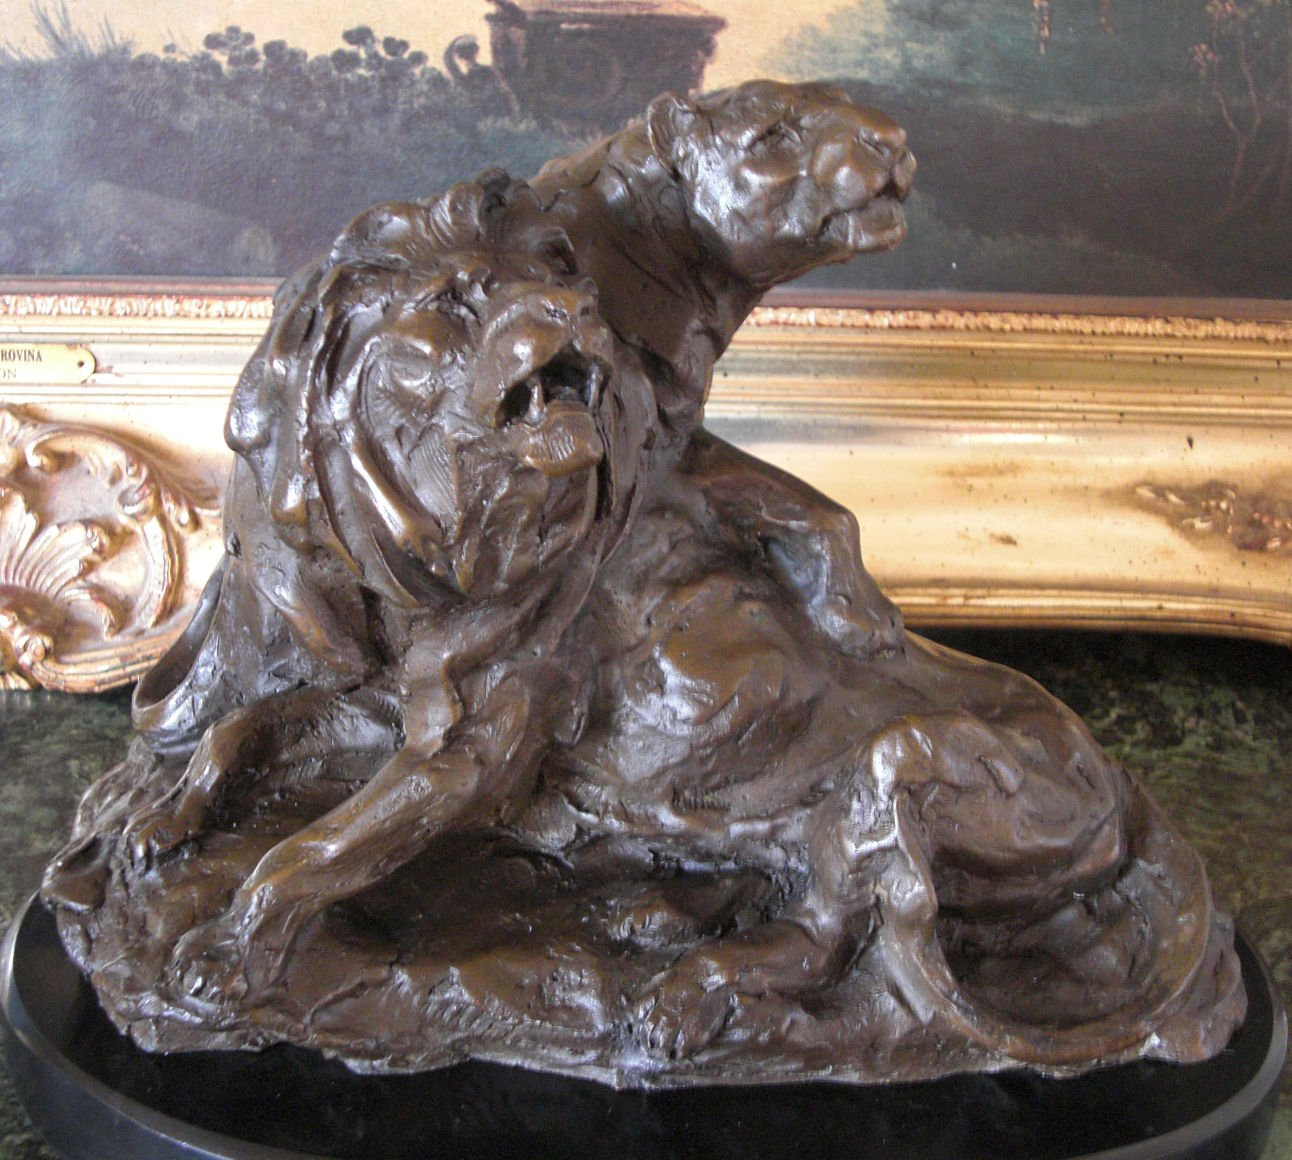 Wildlife Lion and Lioness Every King Needs a Queen Bronze Sculpture